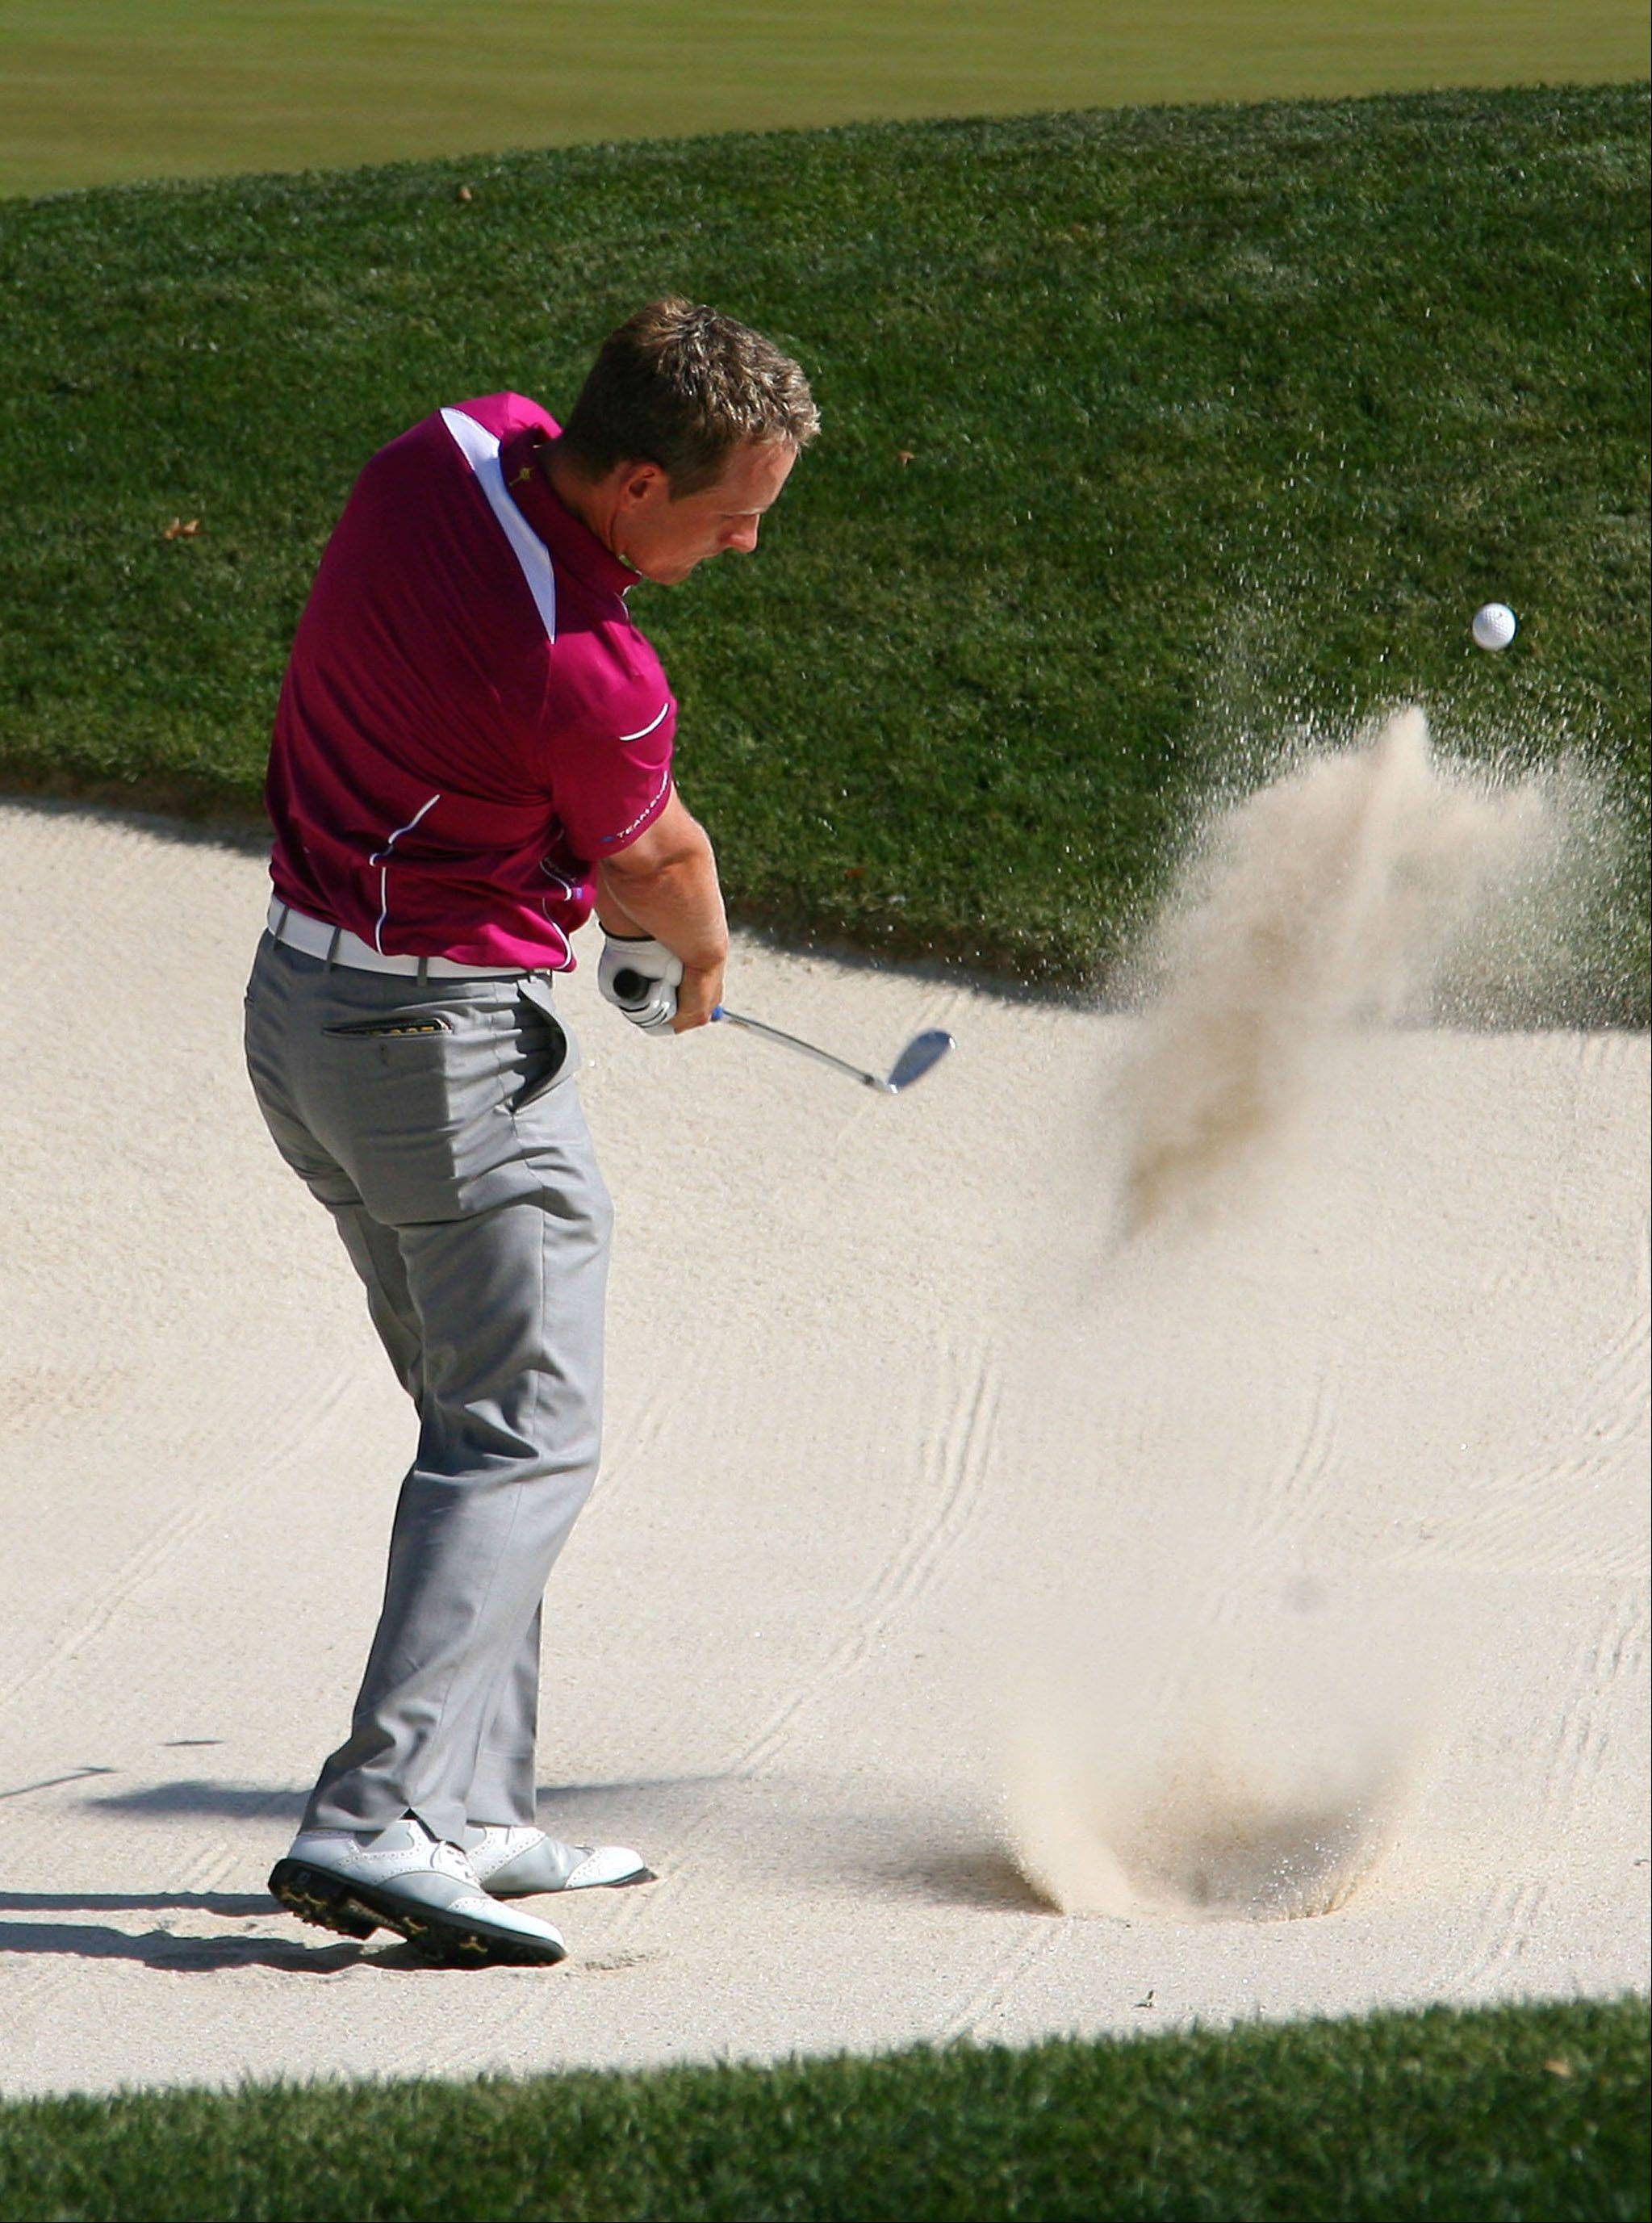 Luke Donald hits out of the trap on the 6th hole during Ryder Cup fourball matches Saturday at Medinah Country Club. He captured his first point of this Ryder Cup when he and Sergio Garcia defeated Tiger Woods and Steve Stricker on the 18th hole.